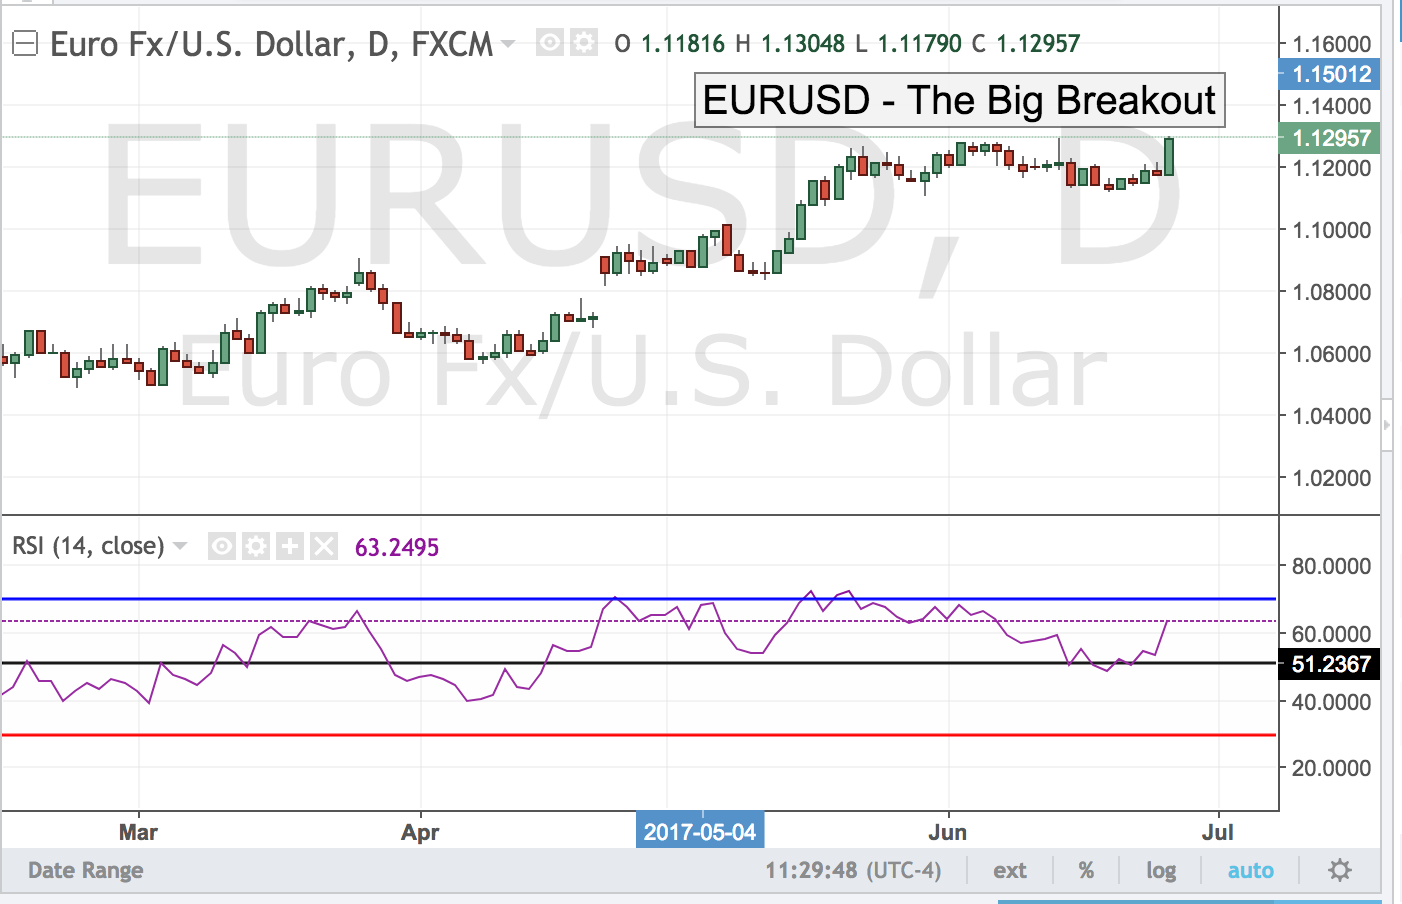 EURUSD – The Big Breakout